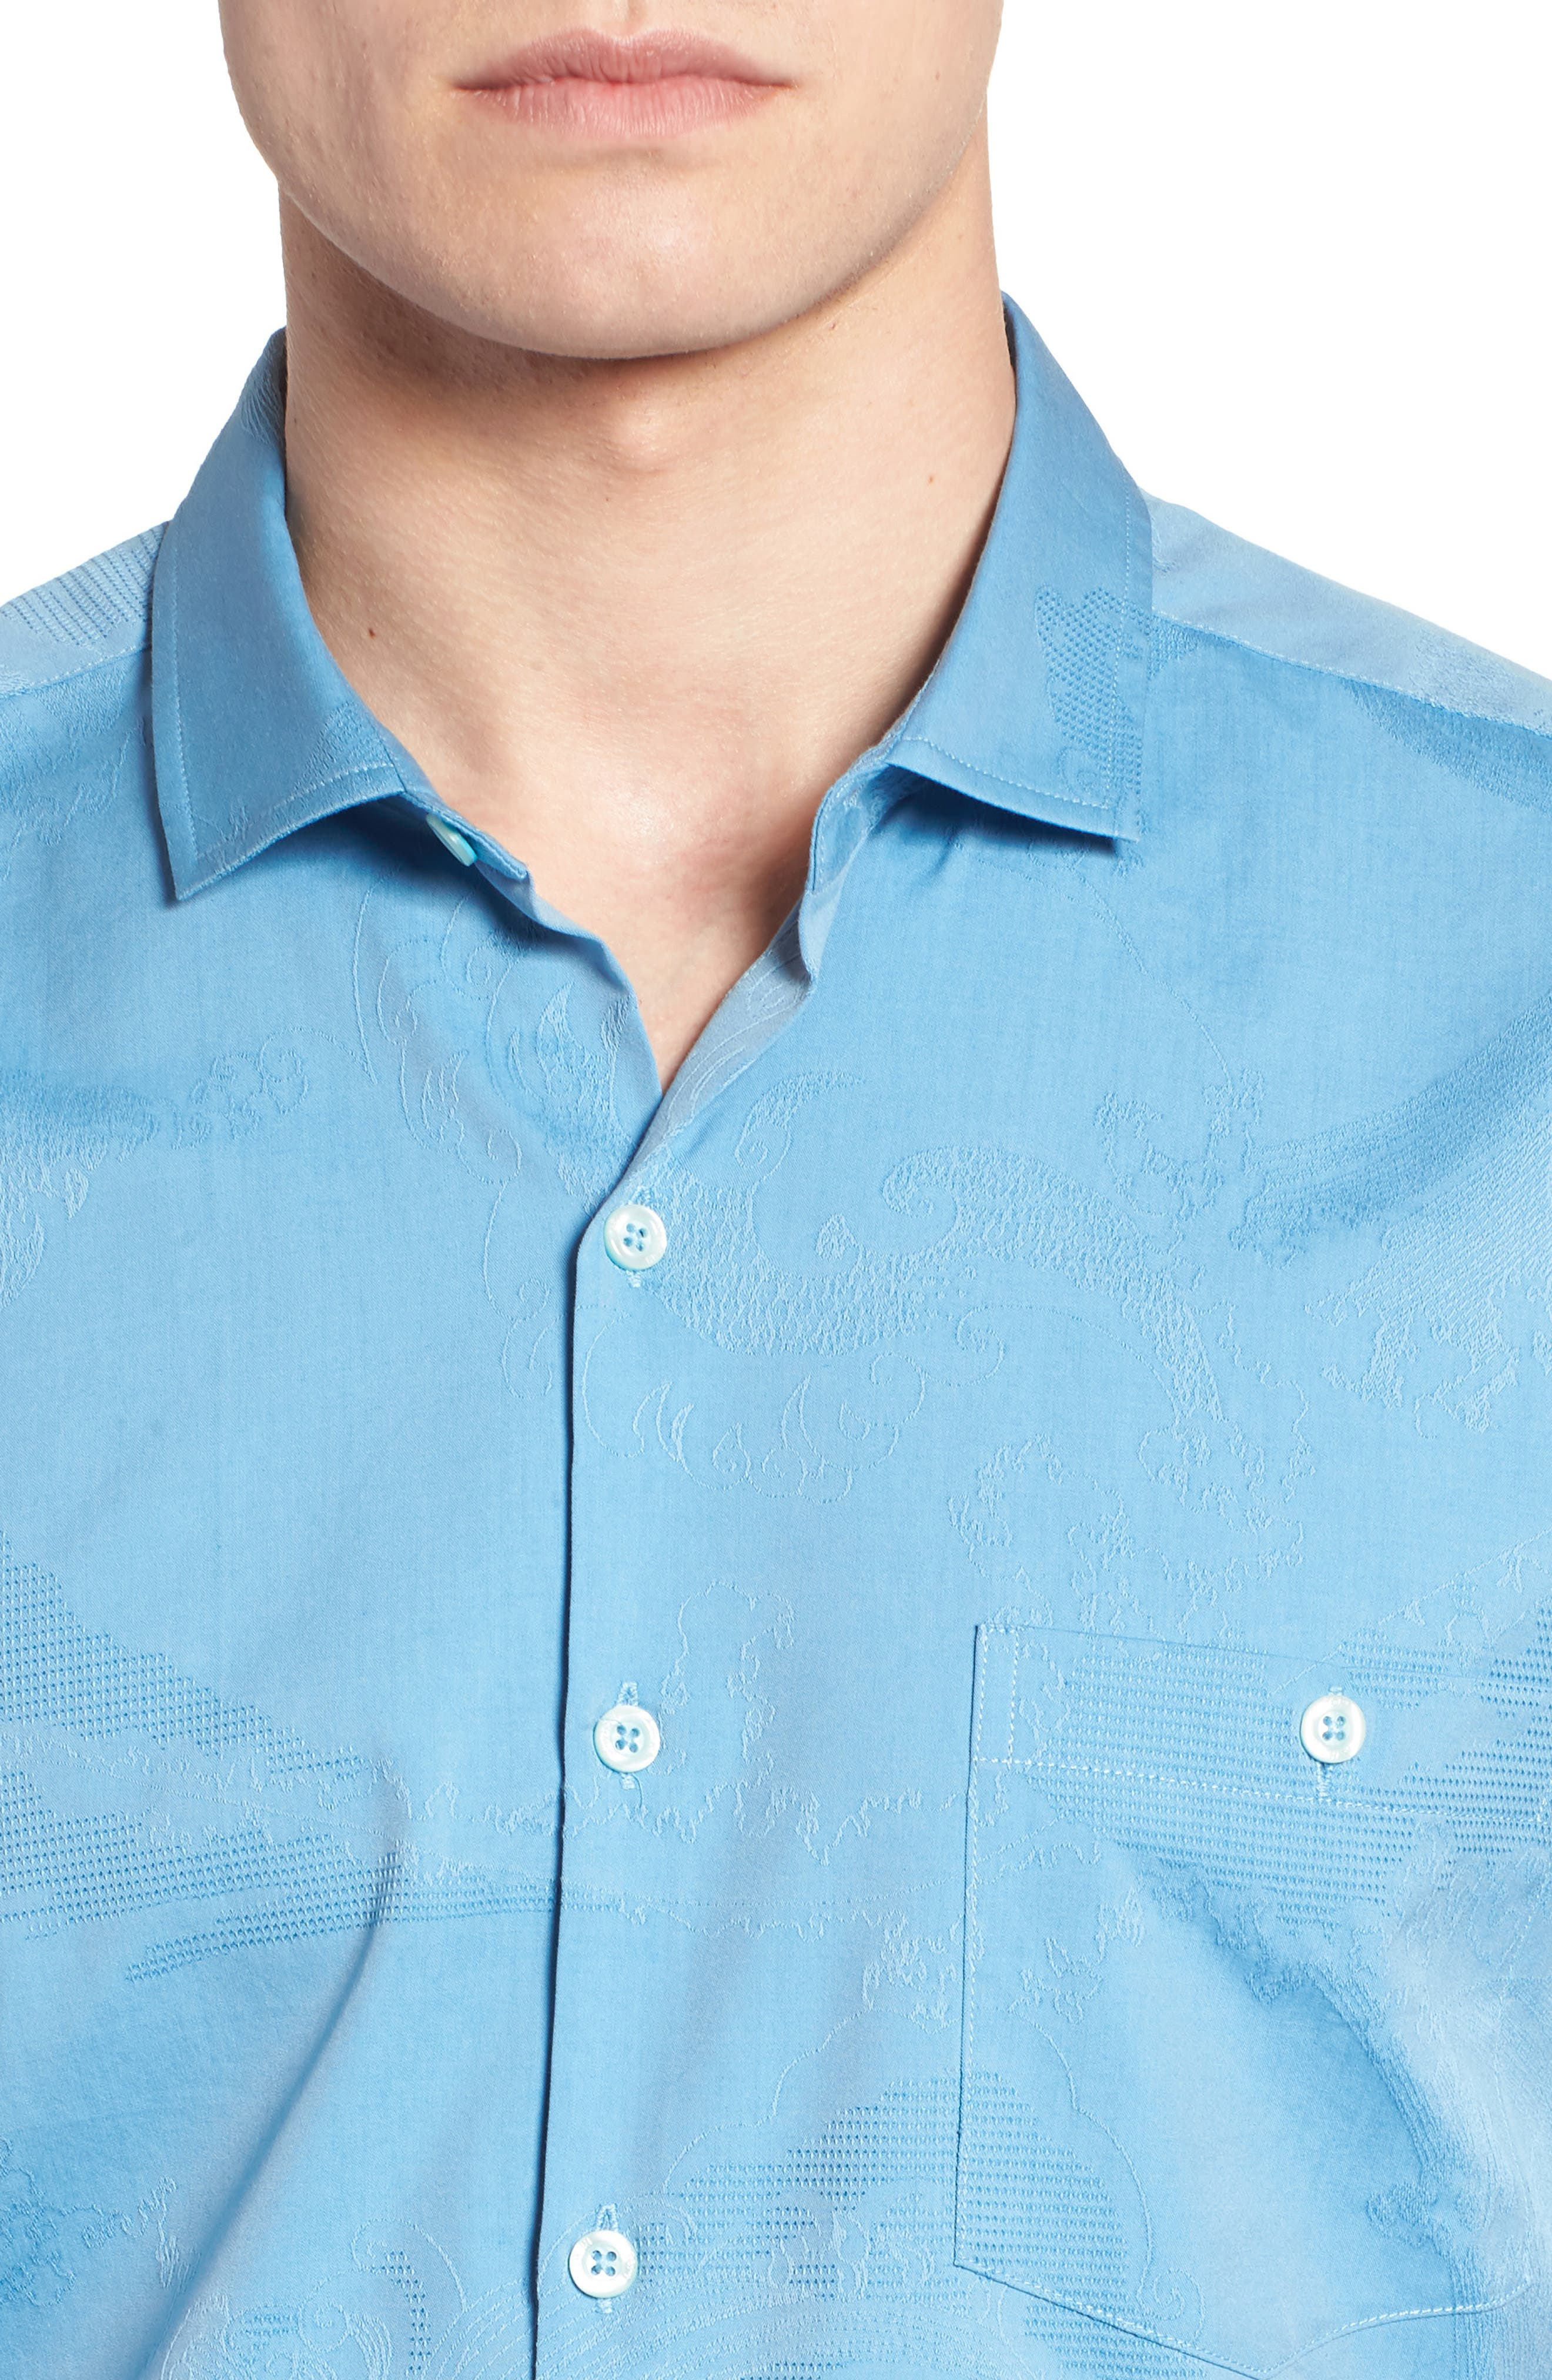 Seas the Day Trim Fit Cotton & Silk Camp Shirt,                             Alternate thumbnail 2, color,                             Wave